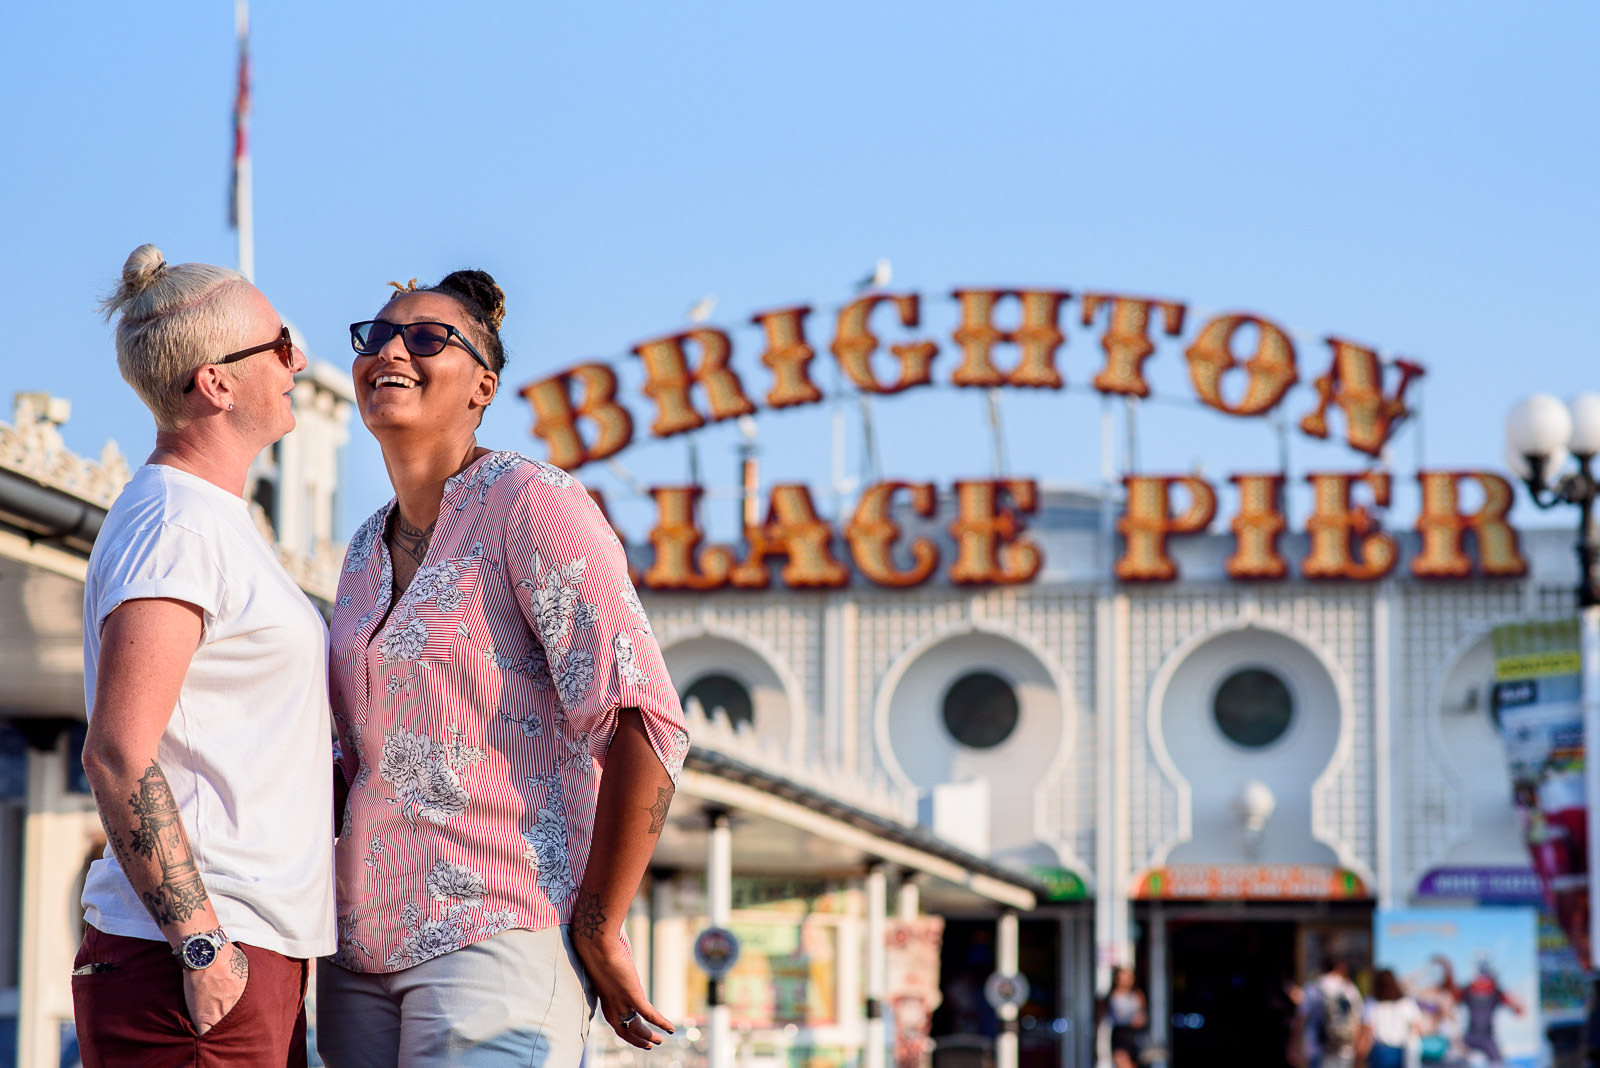 Lesbian couple laughing with the Brighton pier in the background